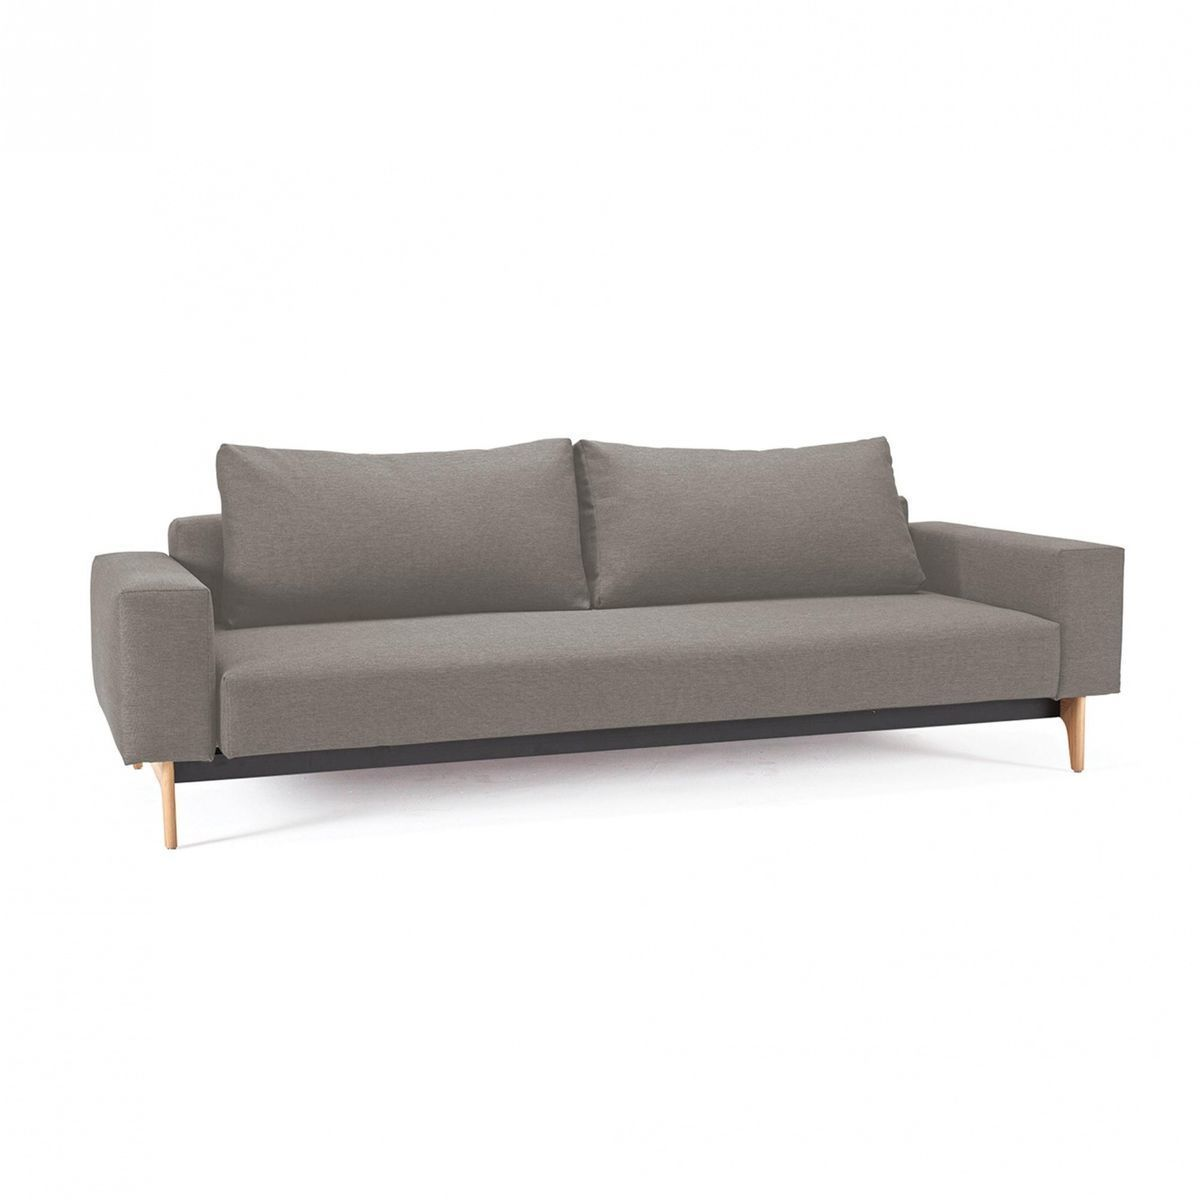 Schlafsofa grau  Idun Sofa Bed | Innovation | AmbienteDirect.com